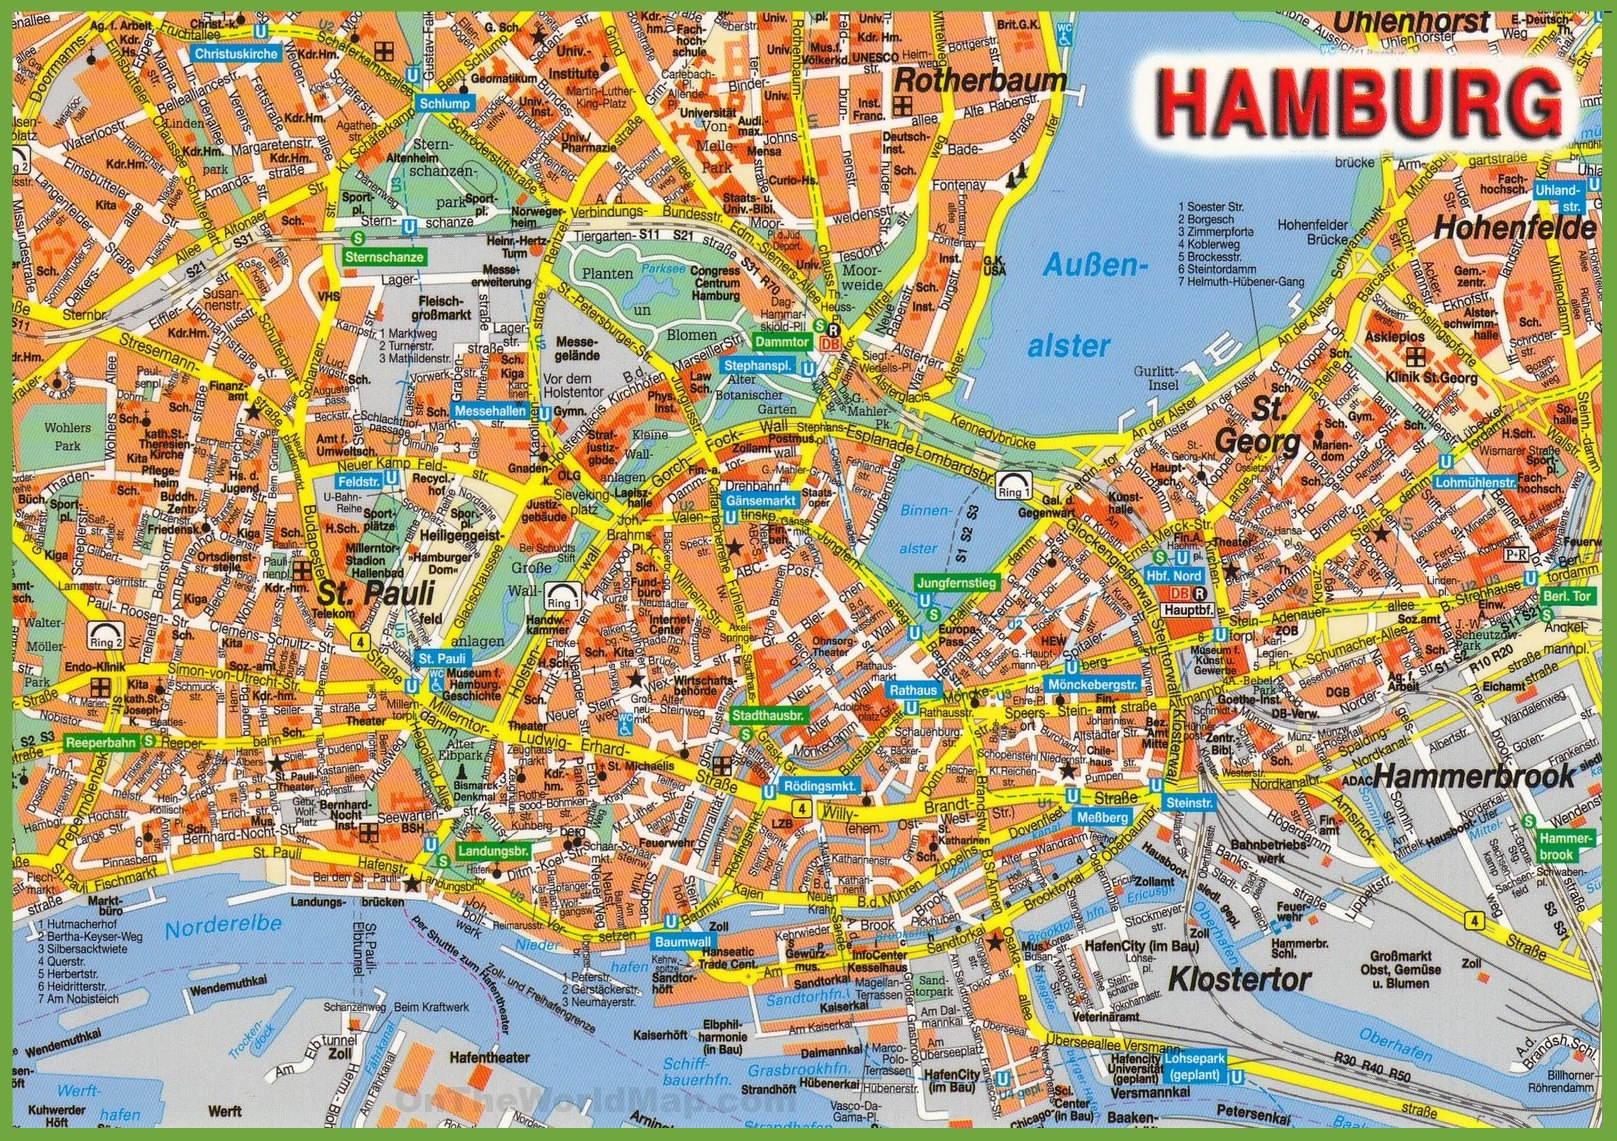 Hamburg tourist attractions map